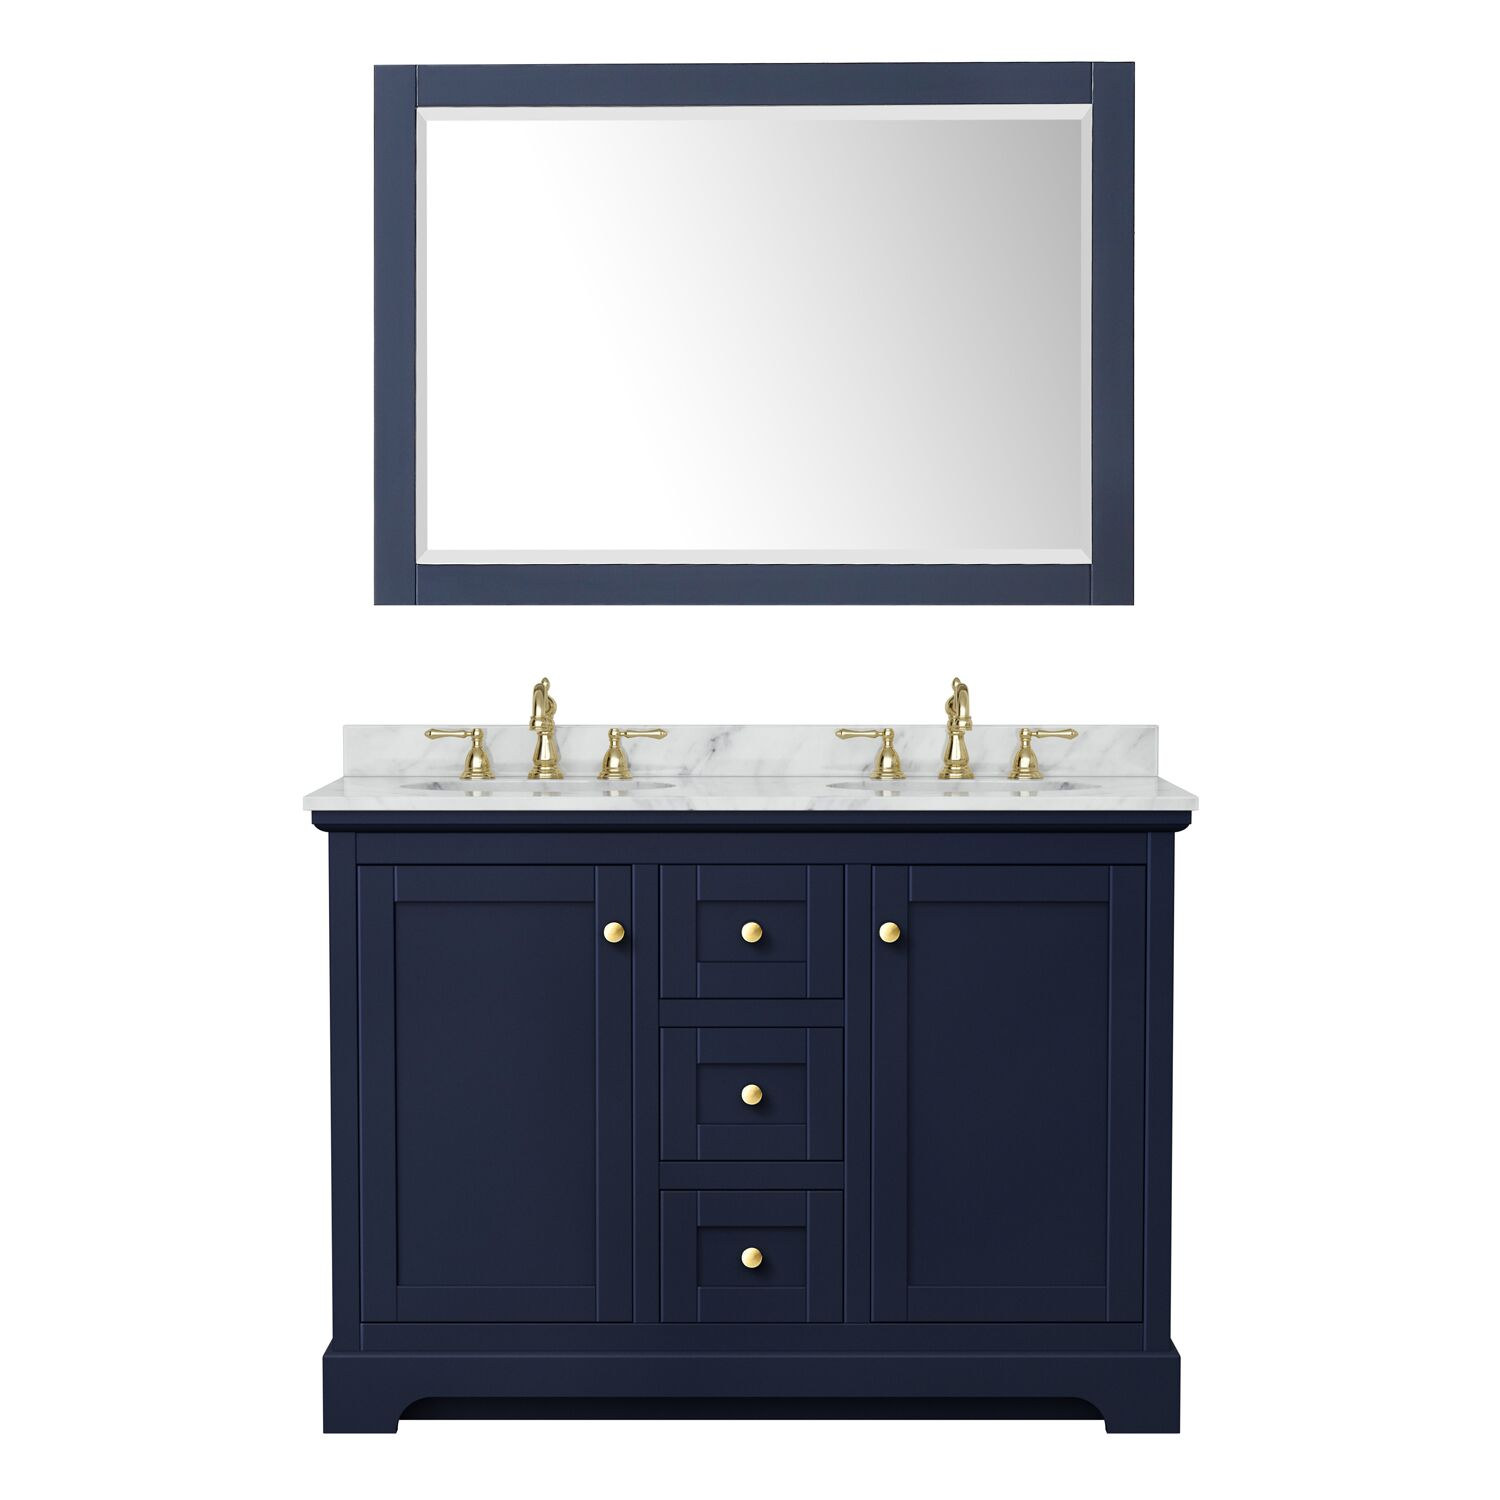 "48"" Double Bathroom Vanity in Dark Blue with Countertop, Sinks and Mirror Options"